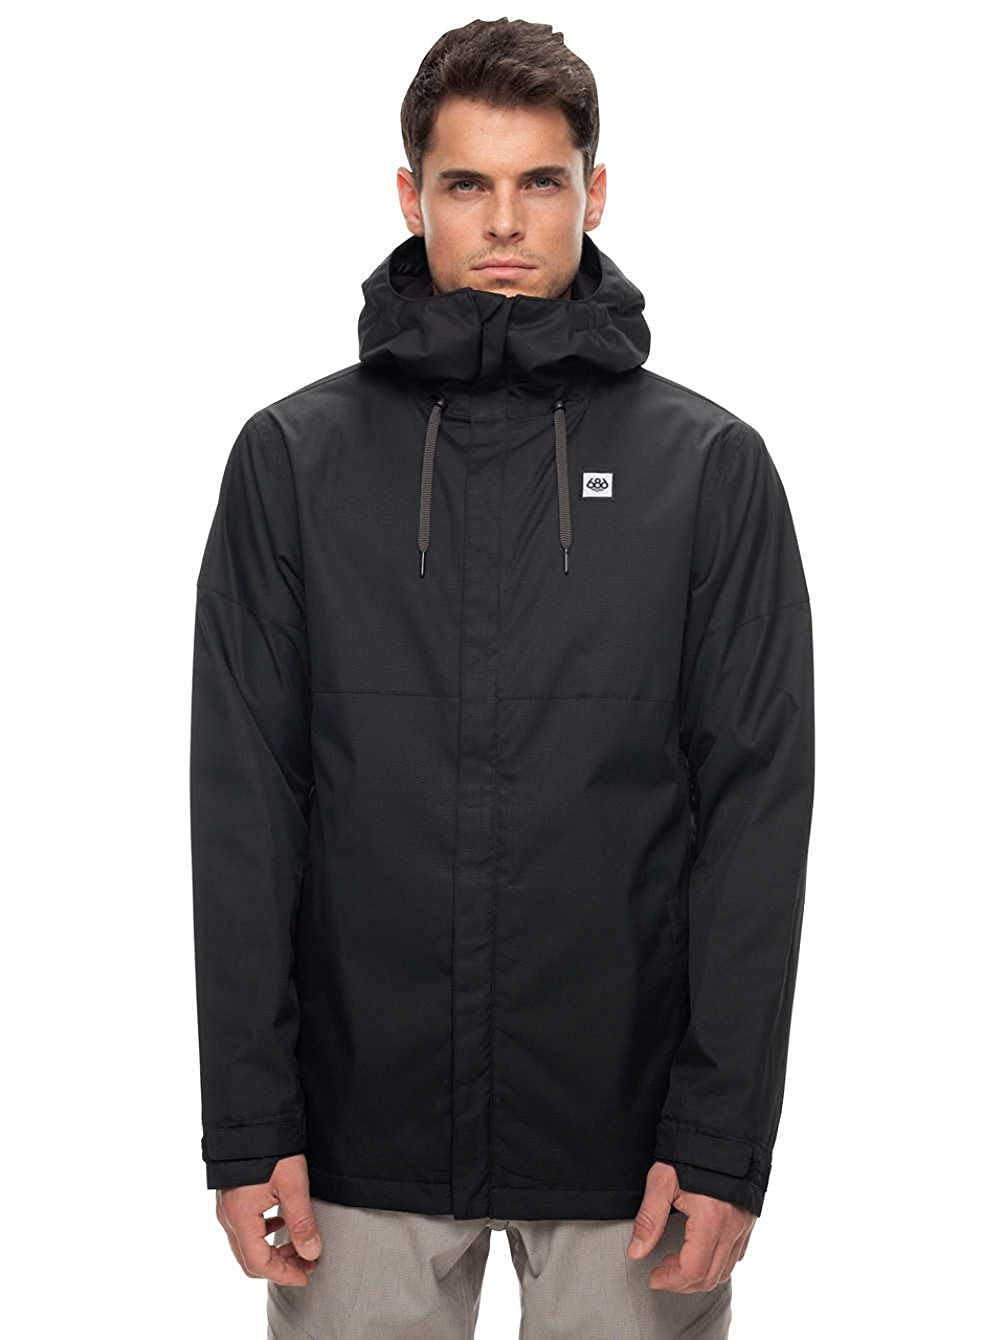 686 Foundation Snowboard Jacket Mens